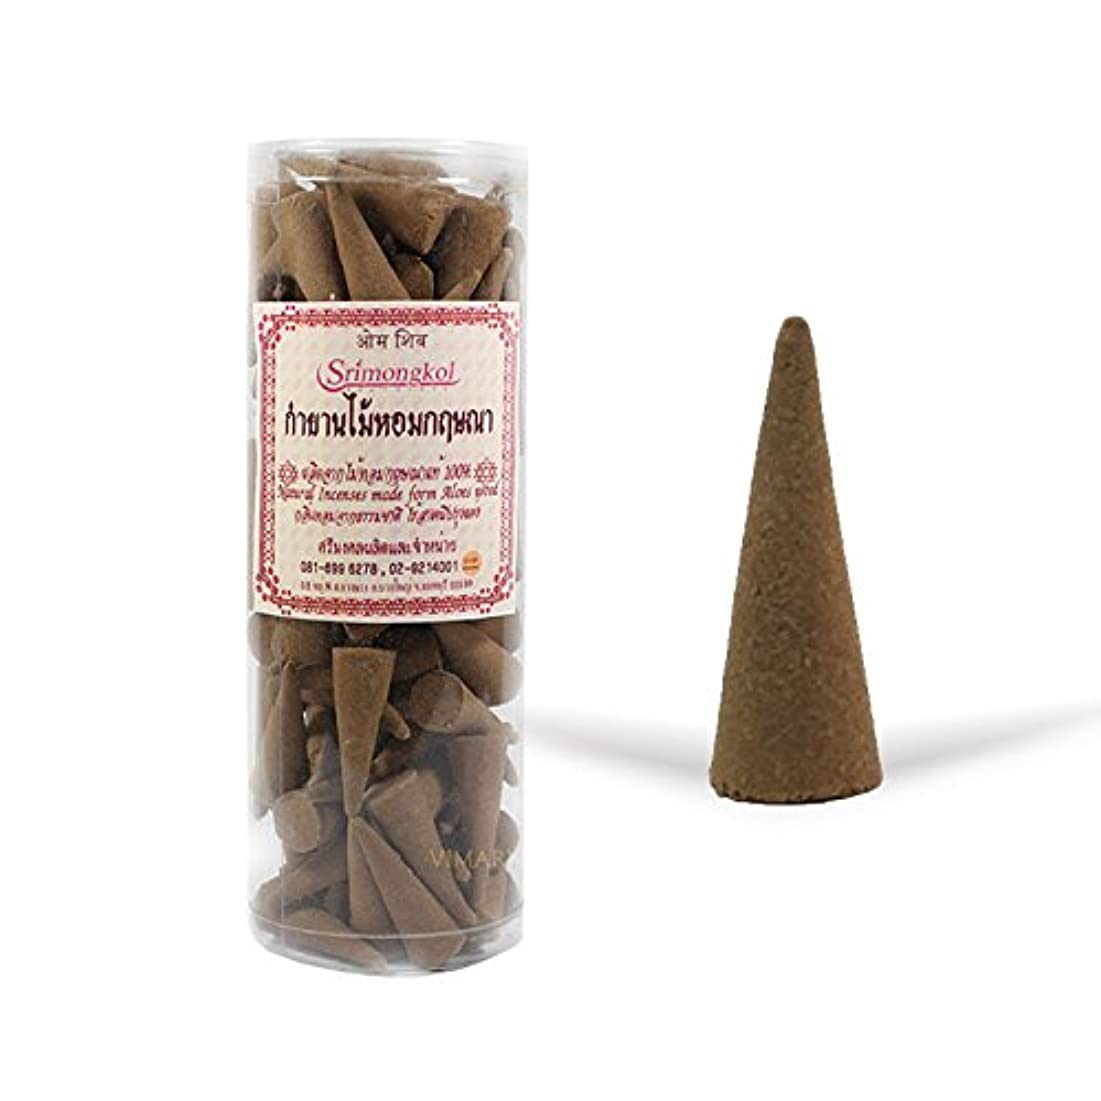 出発魔女静脈Srimongkol Agarwood Natural Incense Cones 300 Grams (No Chemical):::Srimongkol Agarwoodナチュラル香コーン300グラム(化学薬品なし)